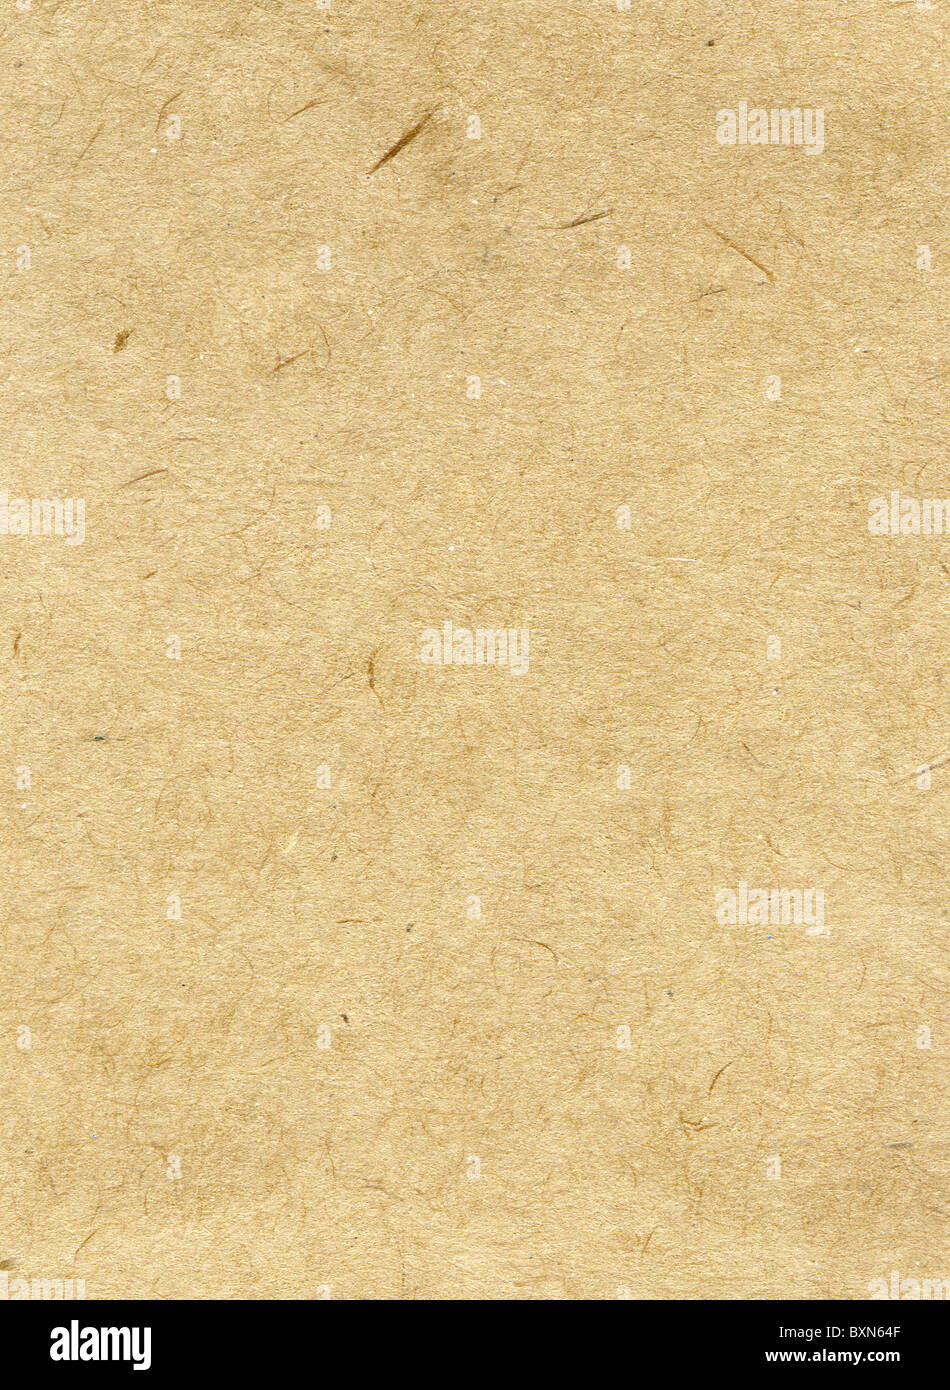 Textured recycled paper with natural fiber parts - Stock Image